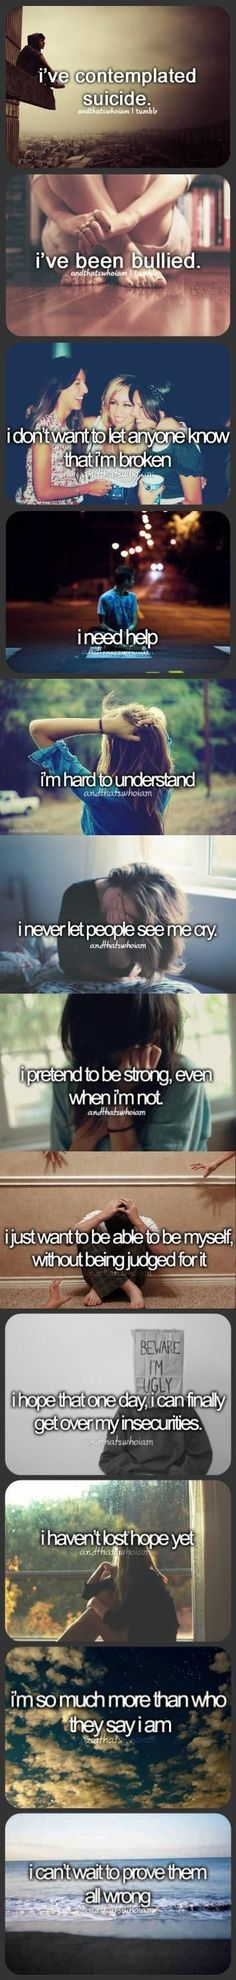 "I'm The one that says ""i never let anyone see me cry"" but inside I scream and cry and call for help"